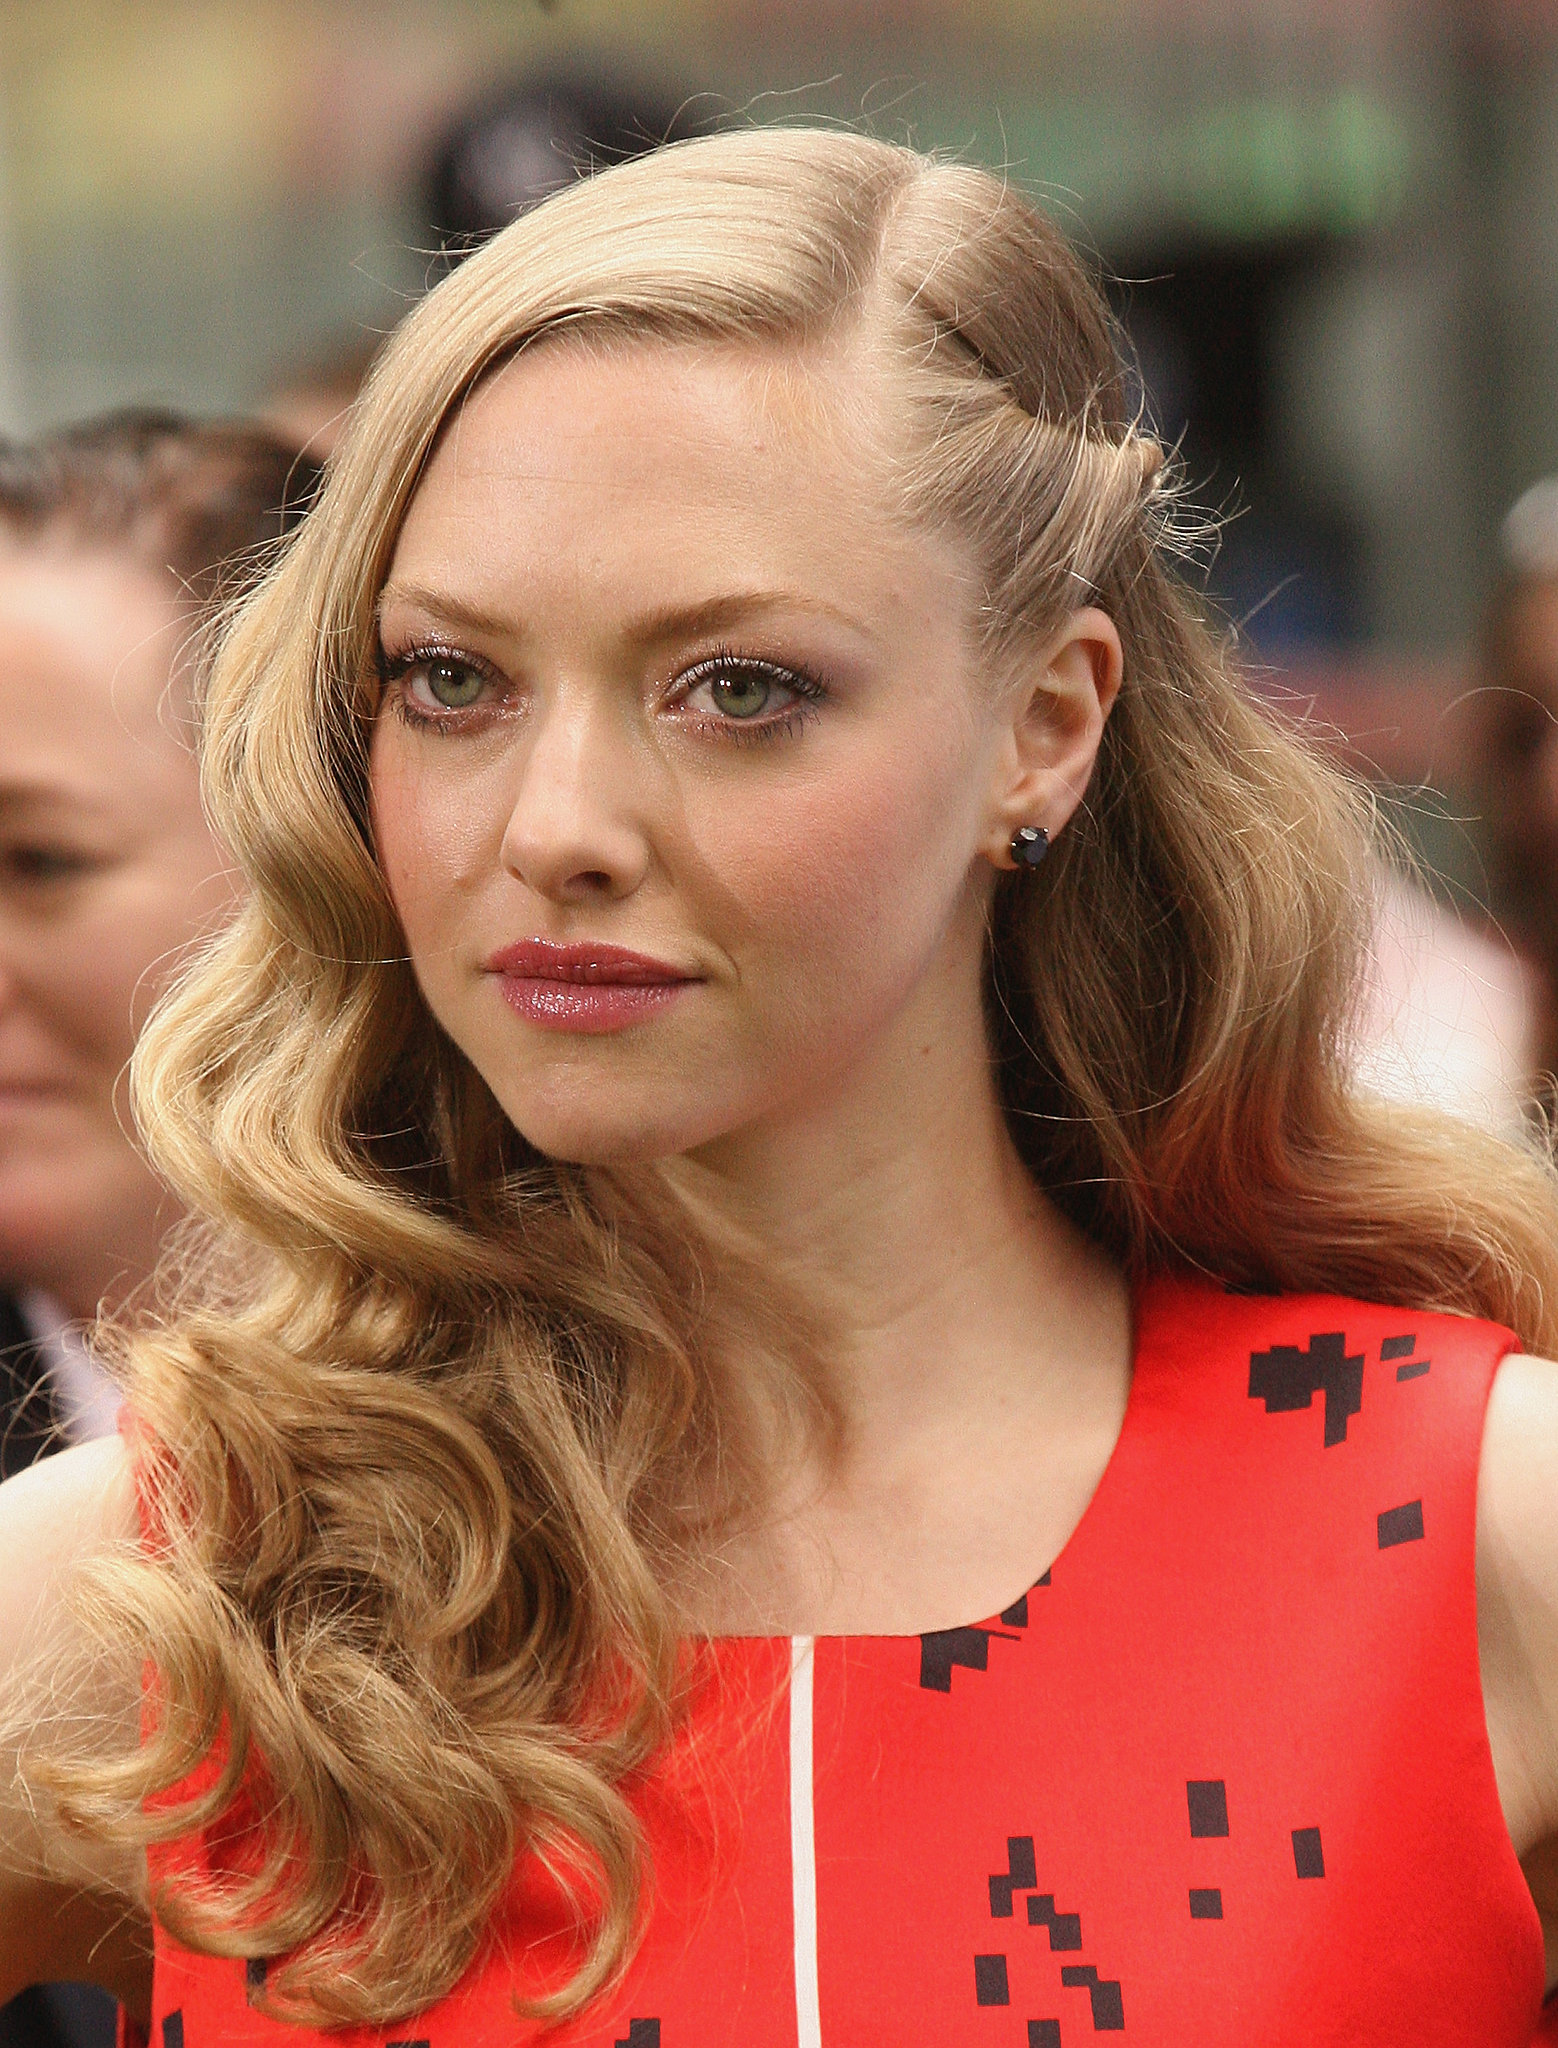 Go for a classic look like Amanda Seyfried. Start off with an extreme side part, then twist a section of hair near the ear and pin back.